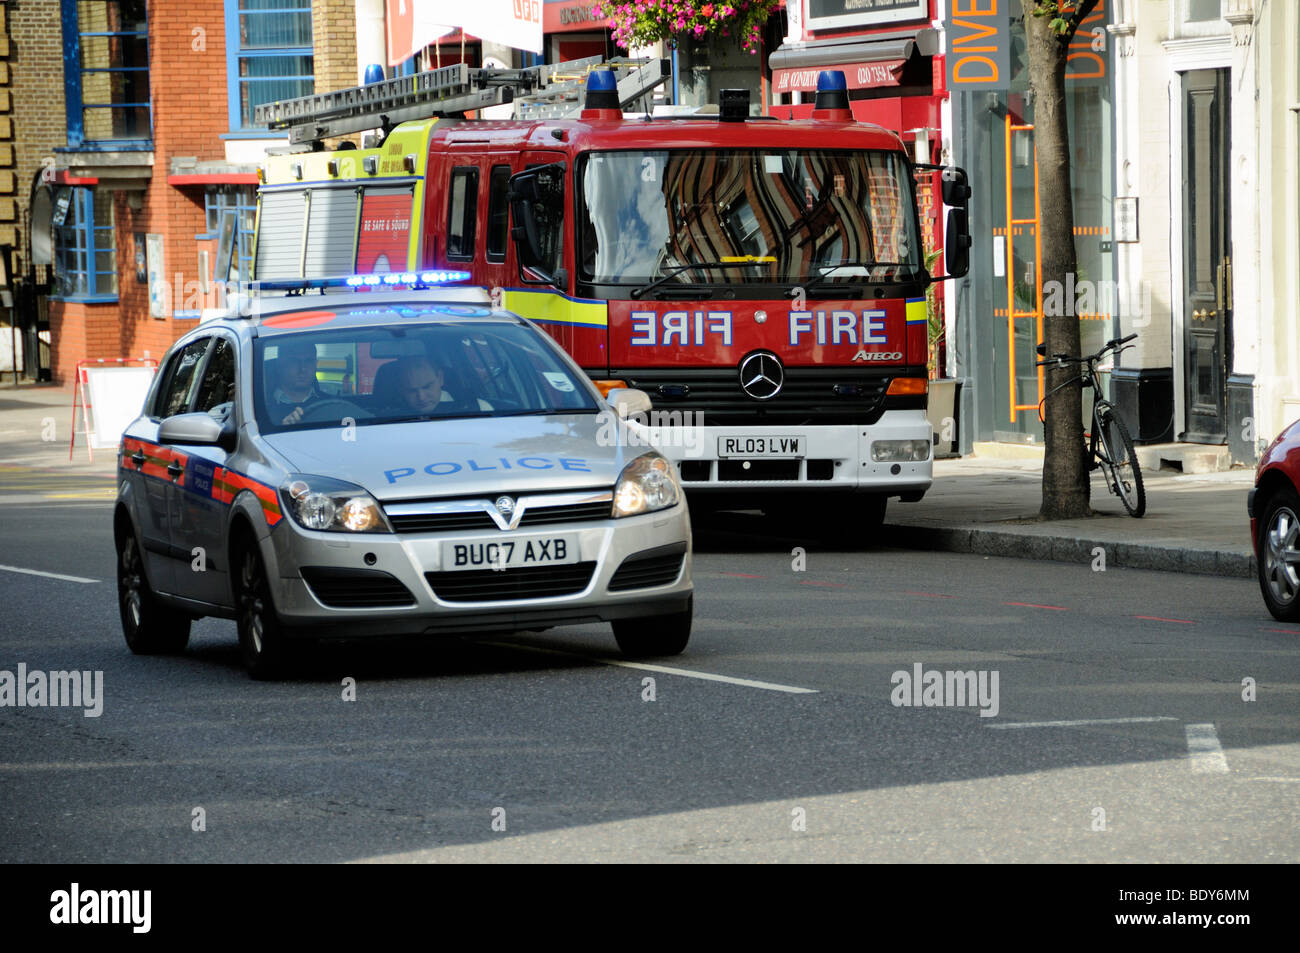 police car with flashing lights passing fire engine, upper street